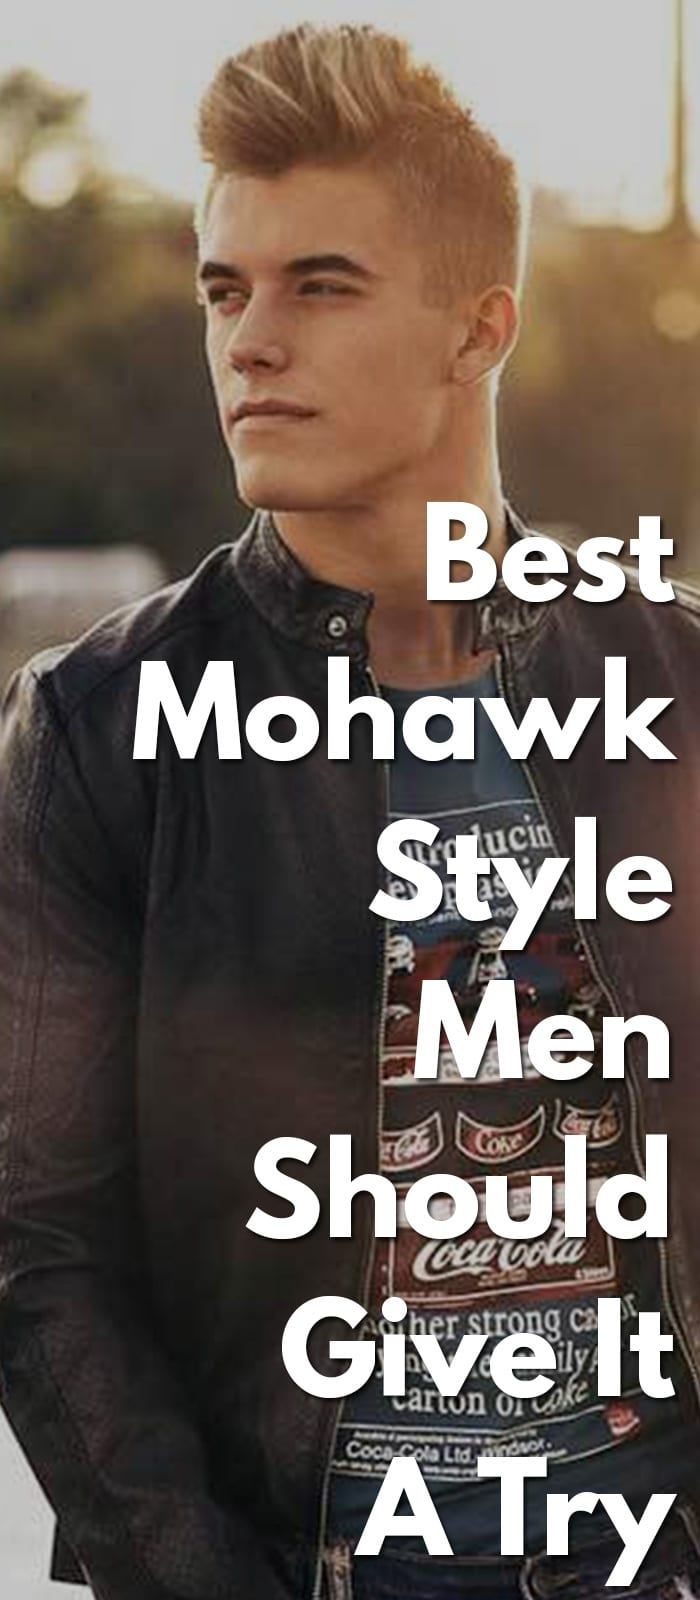 Best-Mohawk-Style-Men-Should-Give-It-A-Try.